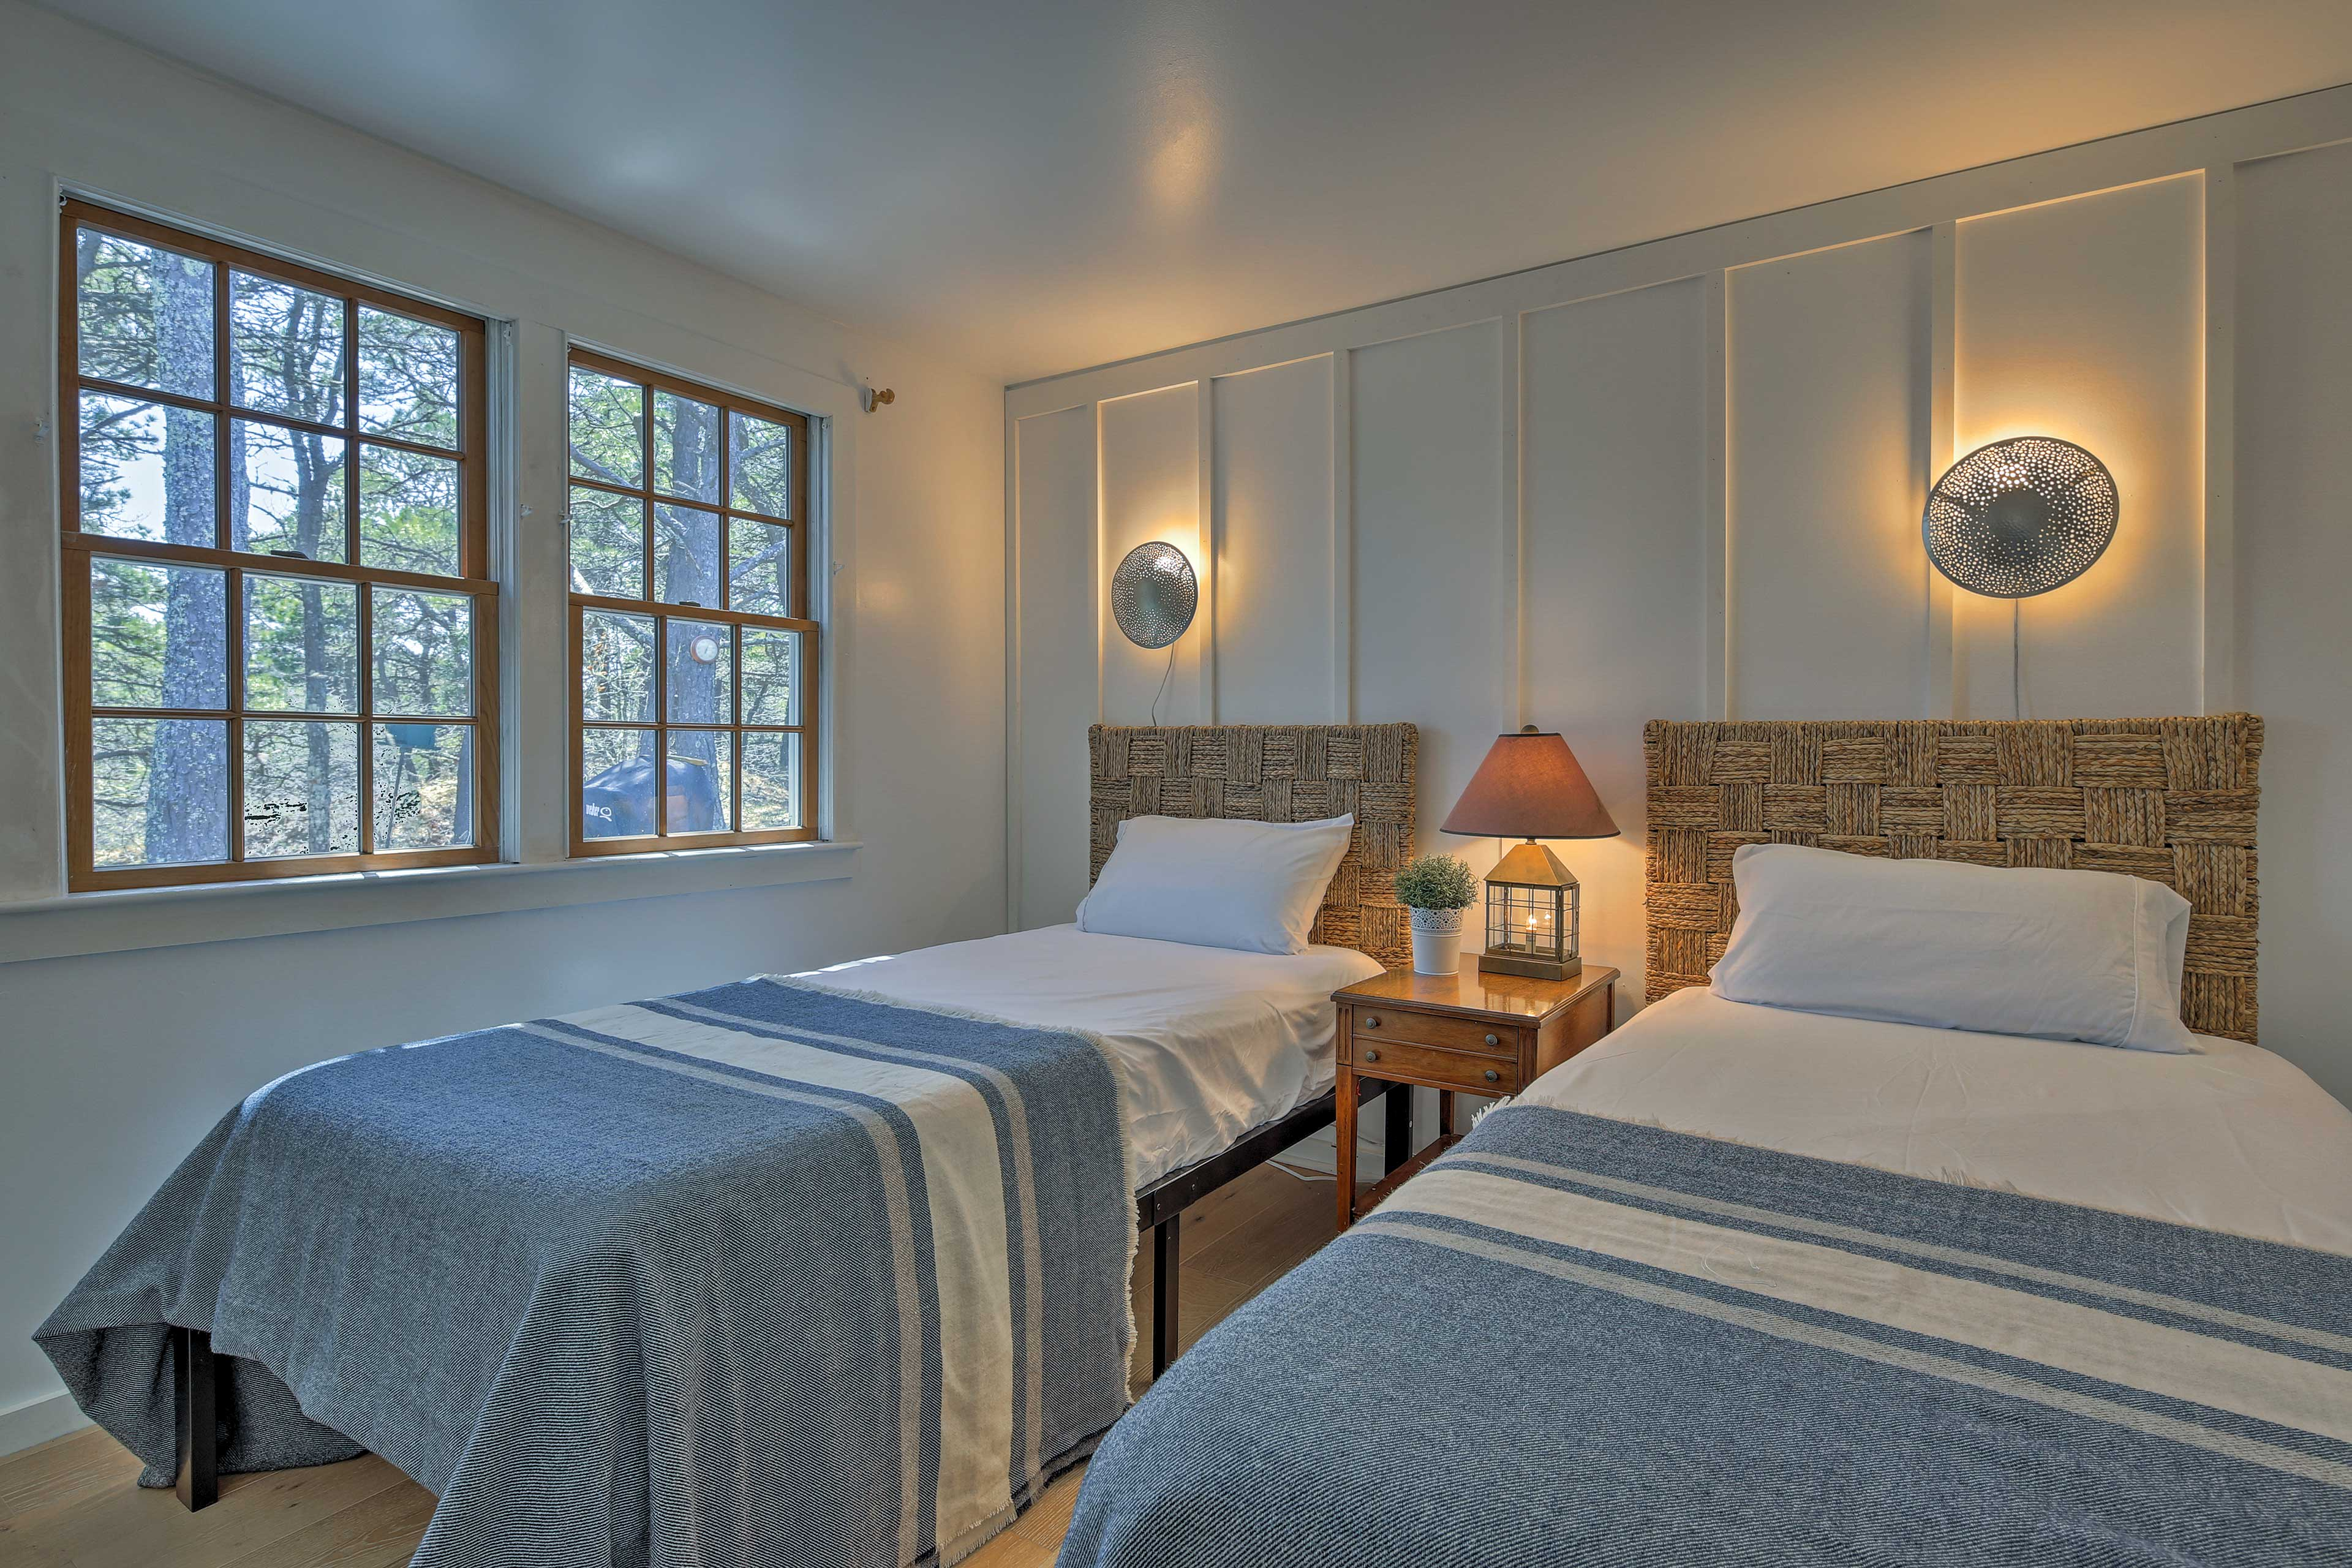 The third bedroom offers 2 twin XL beds.